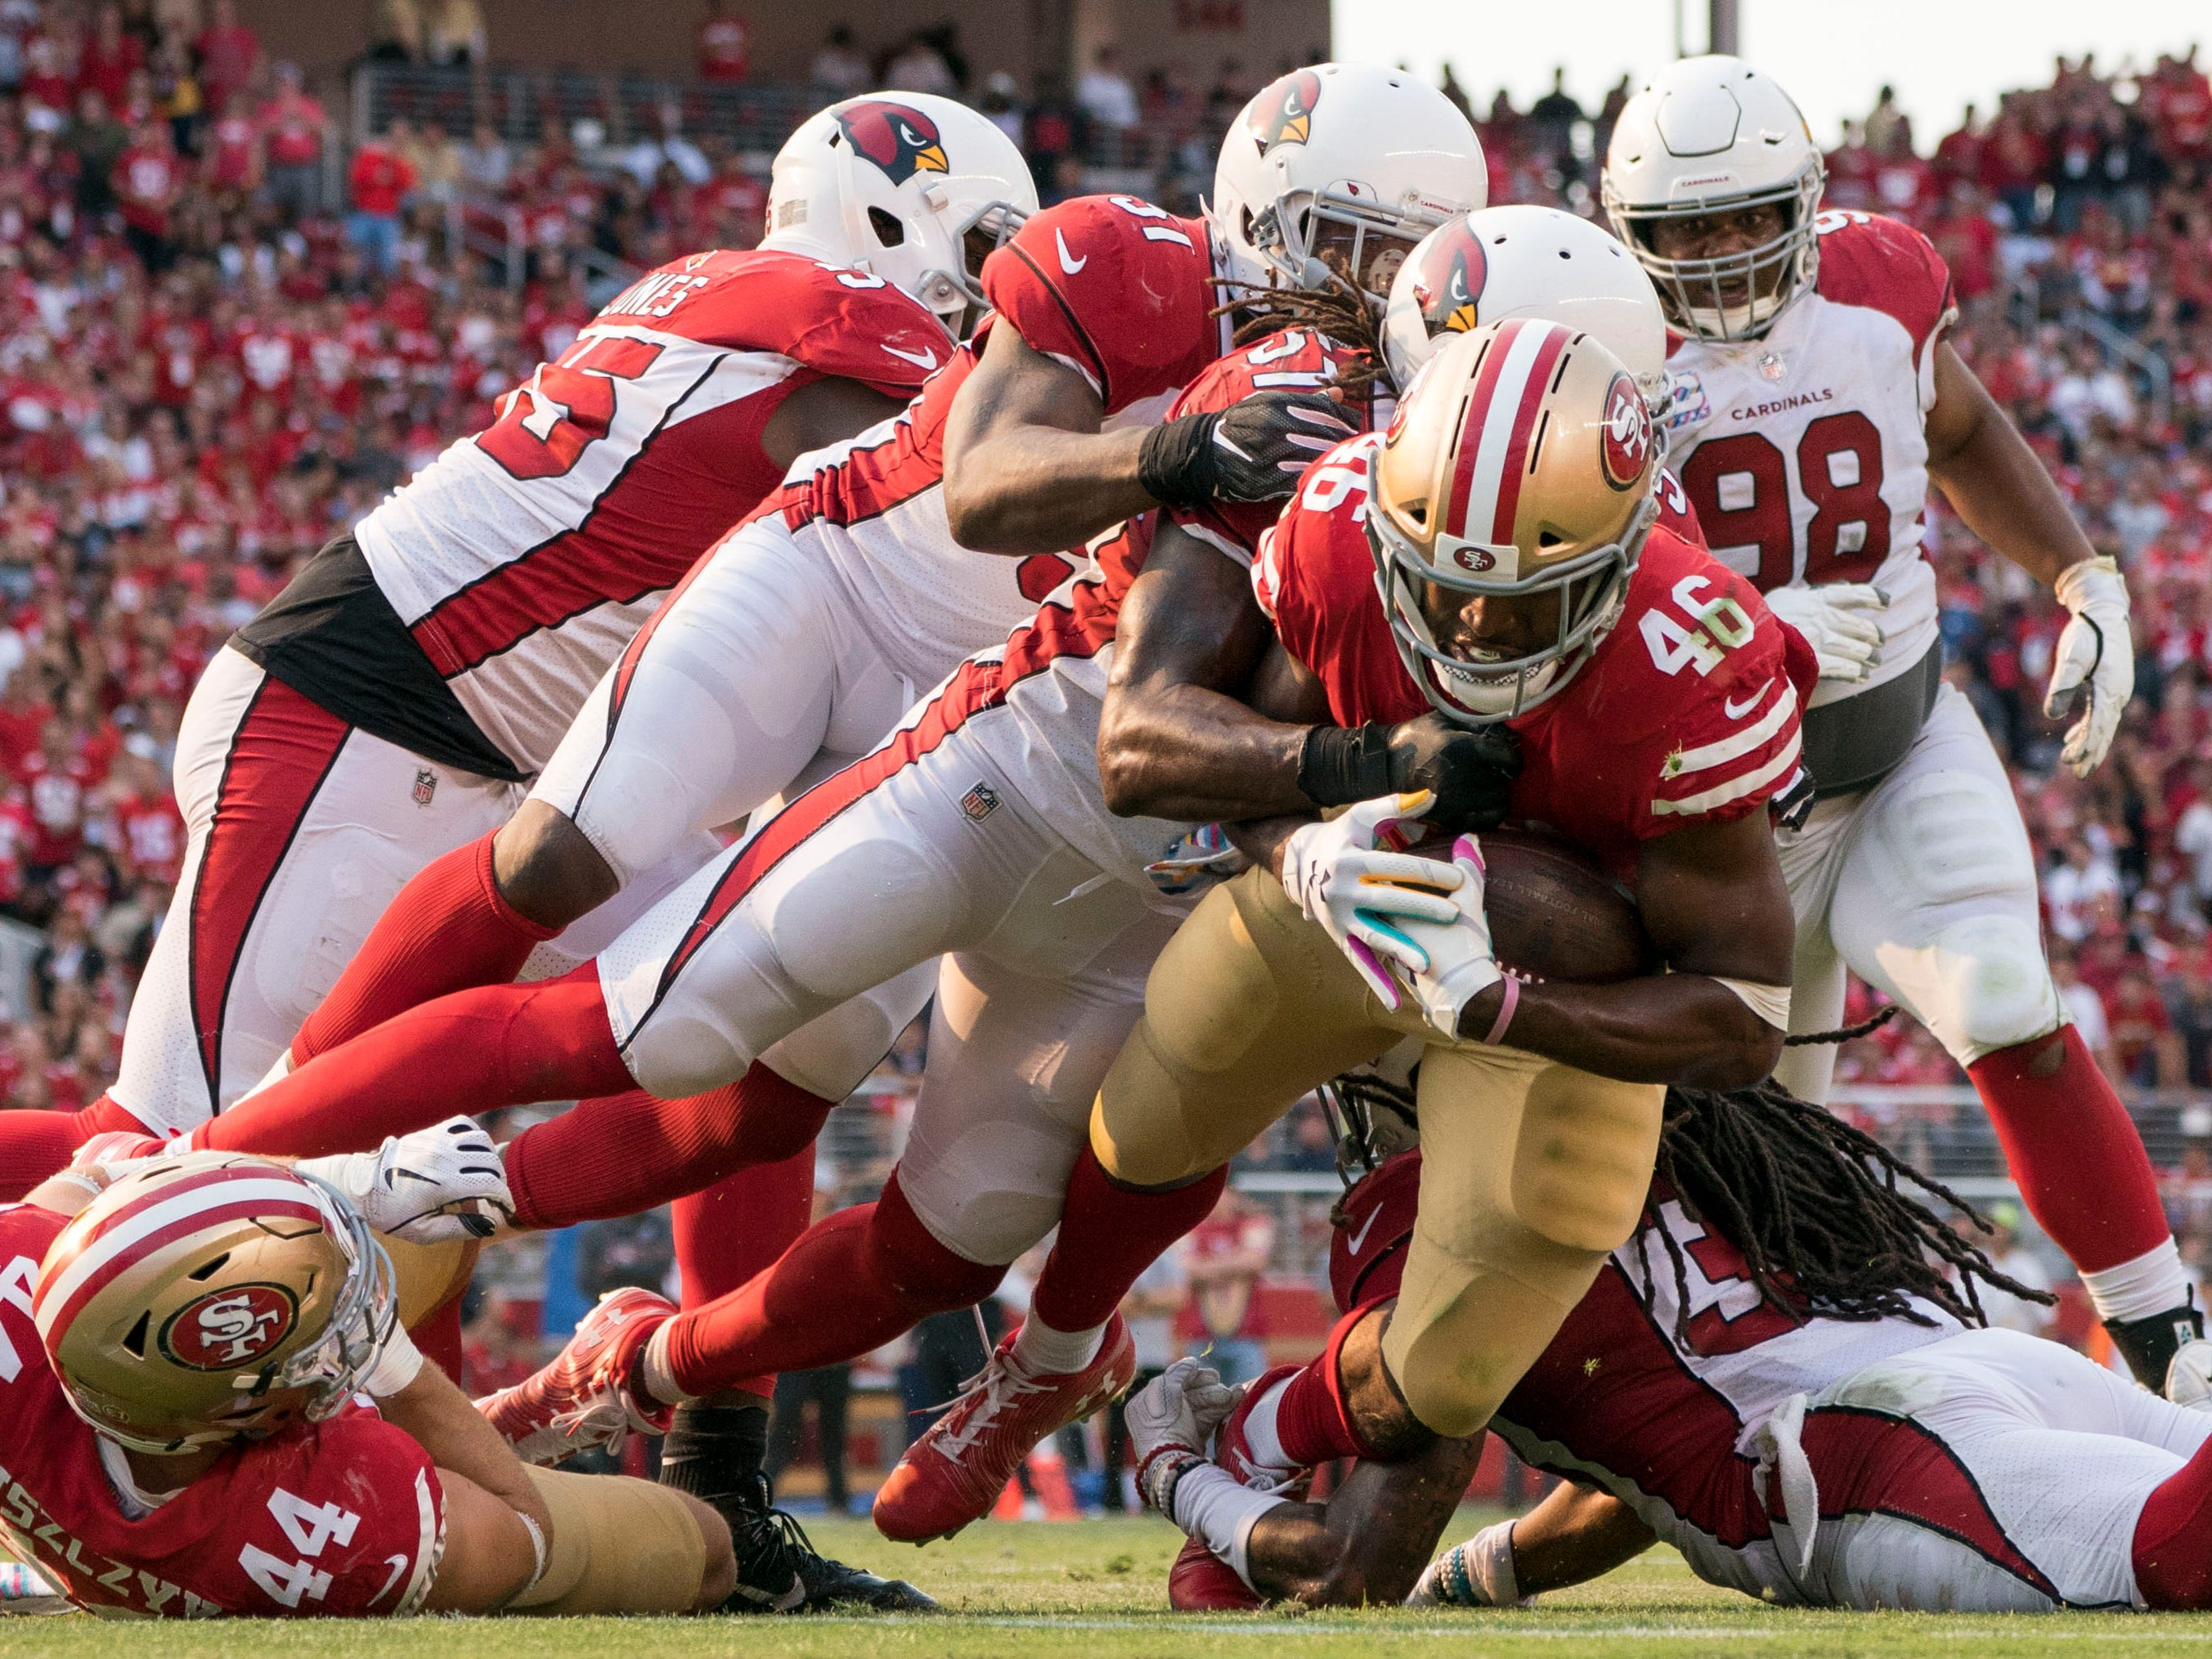 October 7, 2018; Santa Clara, CA, USA; San Francisco 49ers running back Alfred Morris (46) is tackled by the Arizona Cardinals during the fourth quarter at Levi's Stadium.